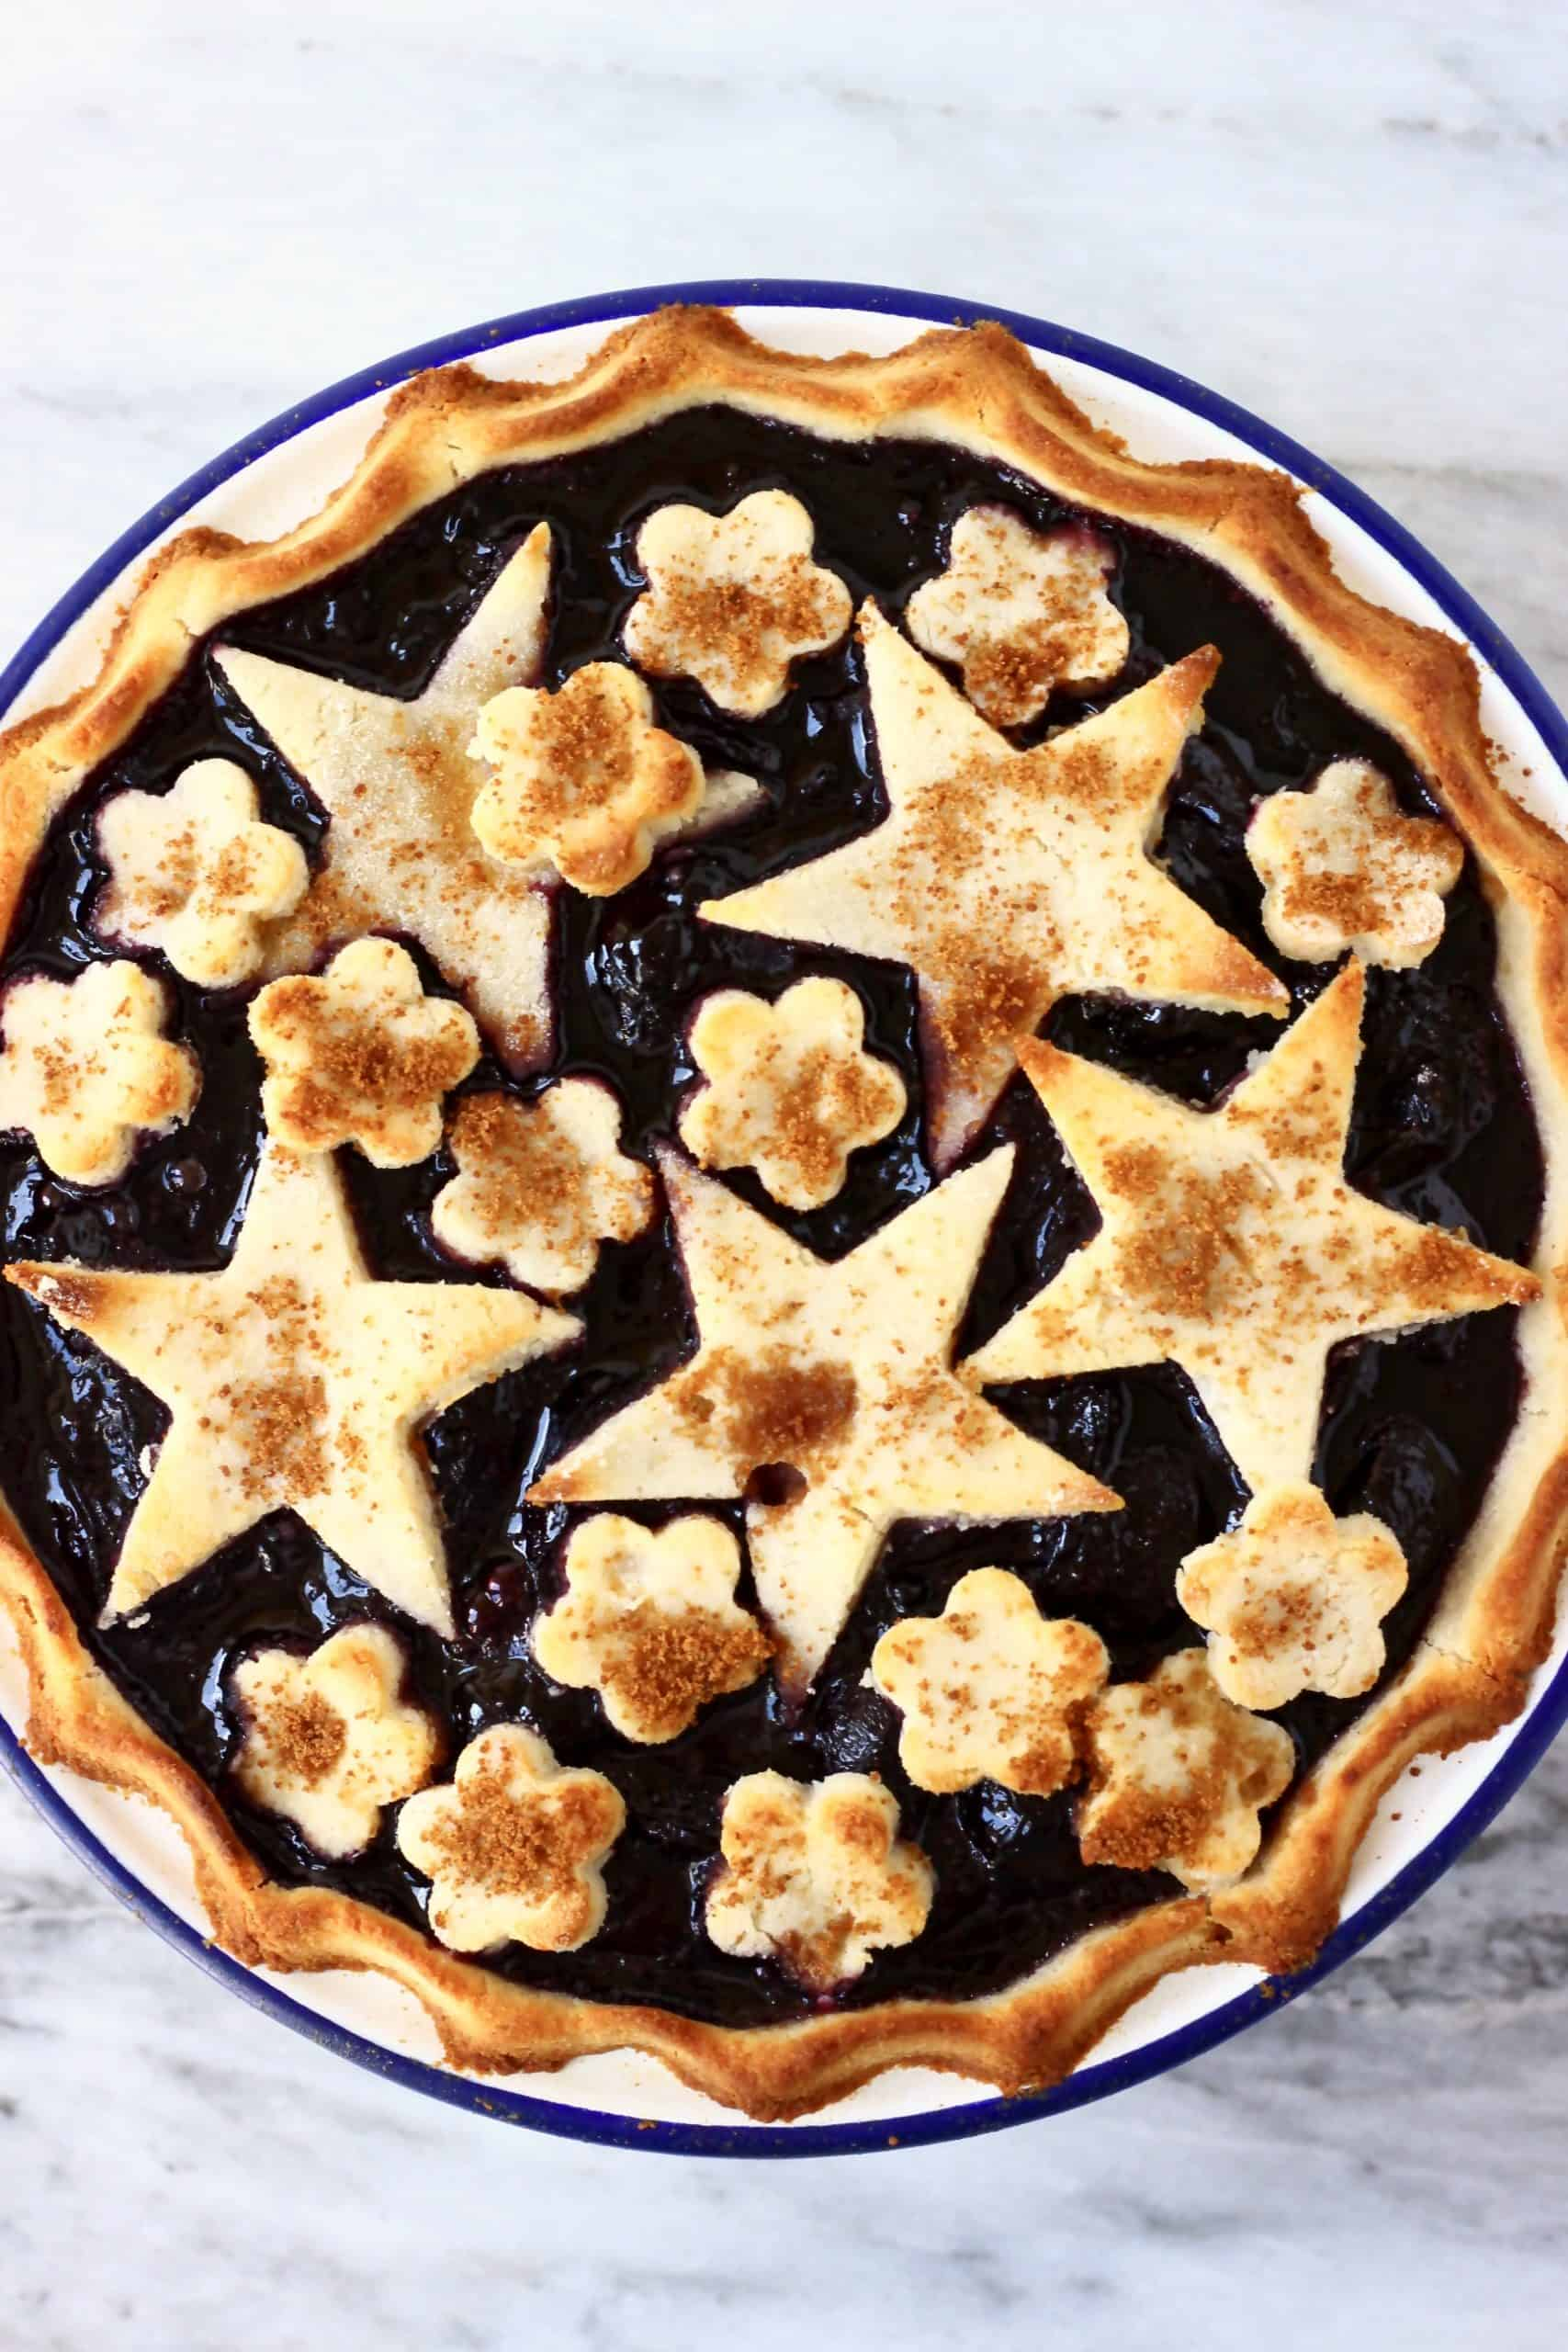 Gluten-free vegan cherry pie topped with pastry stars and flowers in a white pie dish